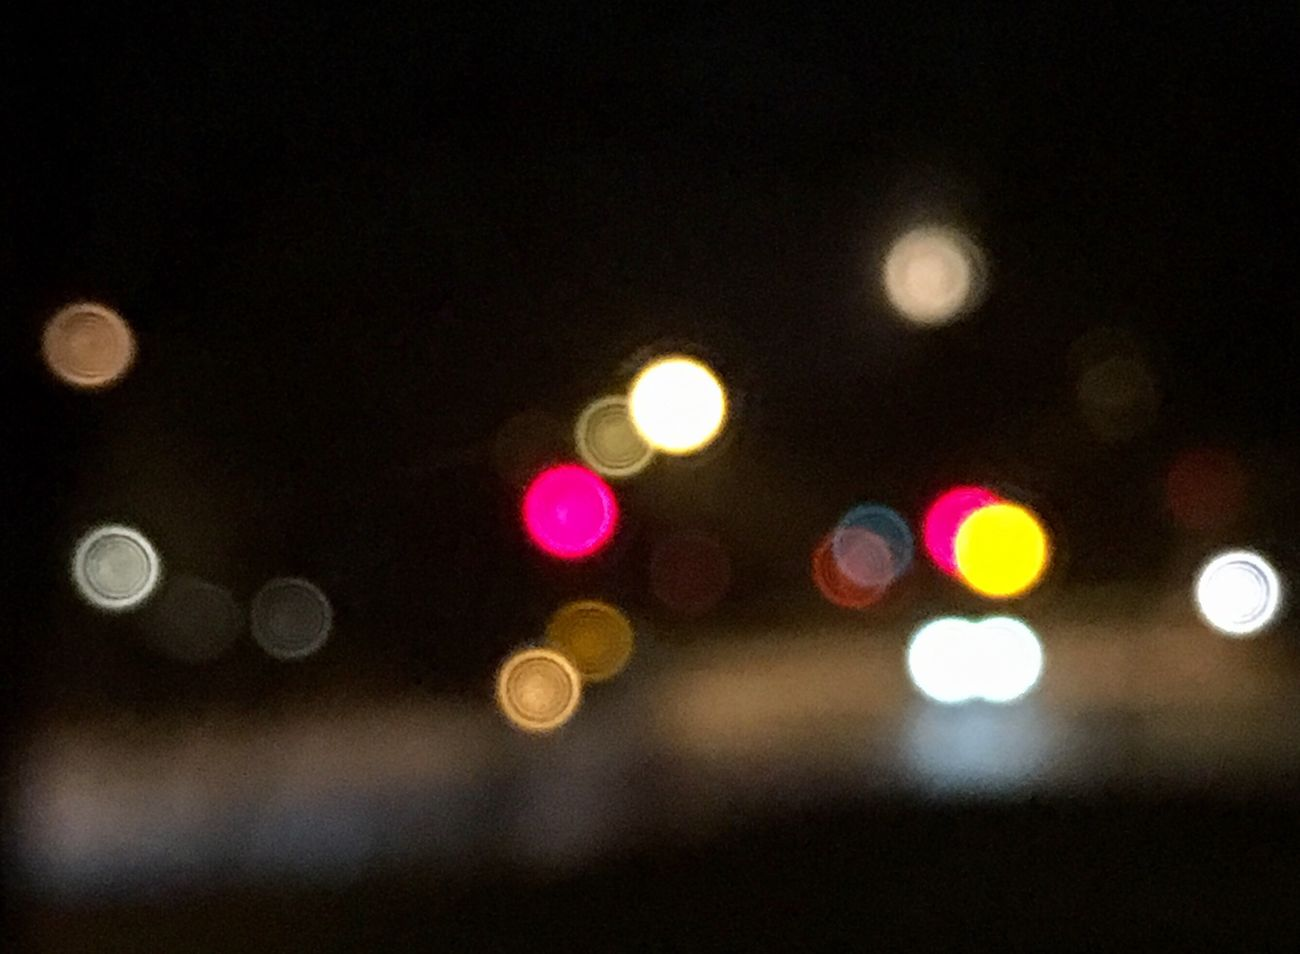 Blurry vision Illuminated Defocused Streetphotography From My Point Of View Photograph Night Lights And Shadows